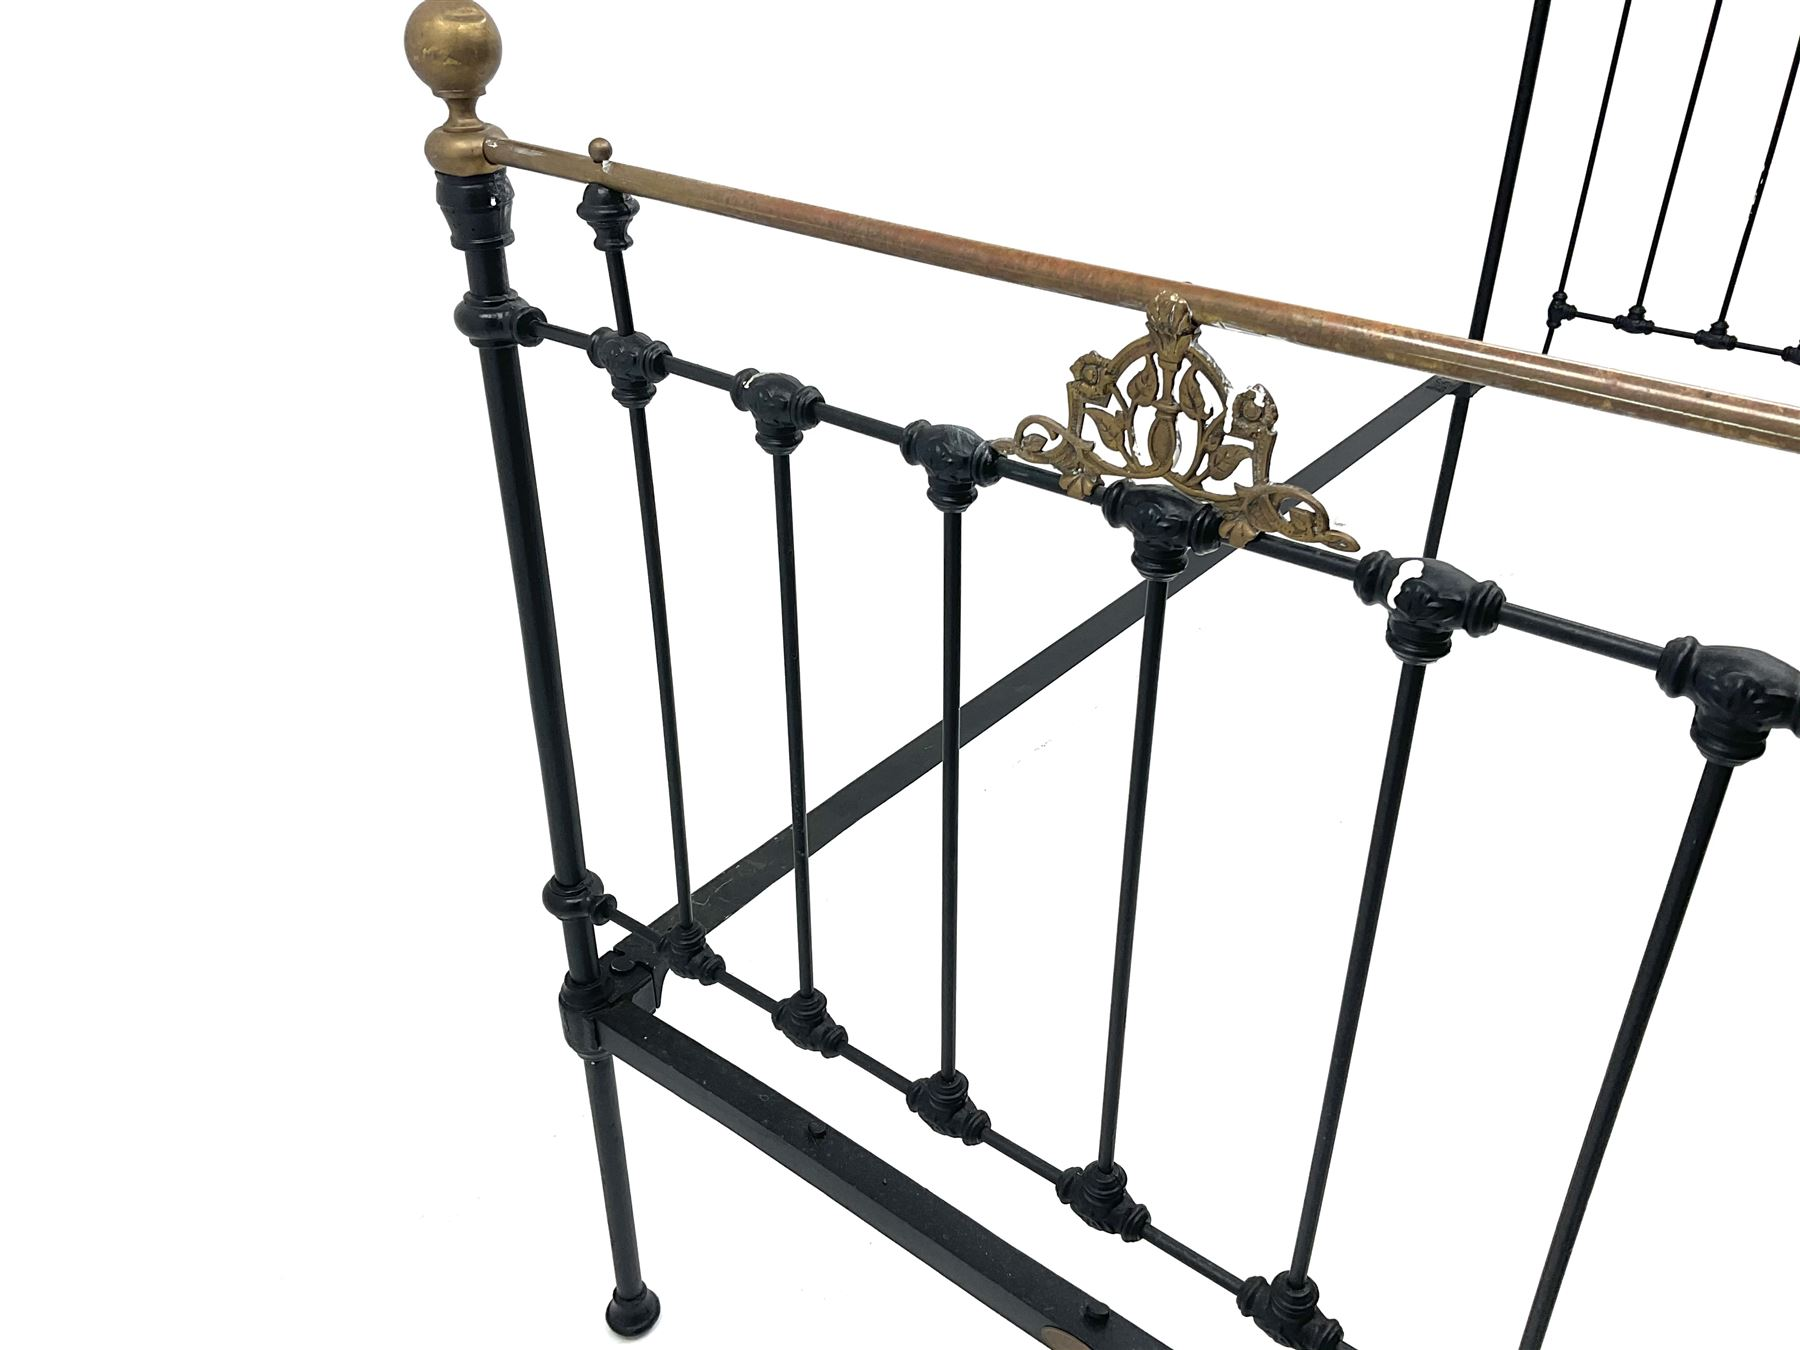 Maples and Co Brass and black painted wrought metal bedstead - Image 2 of 3